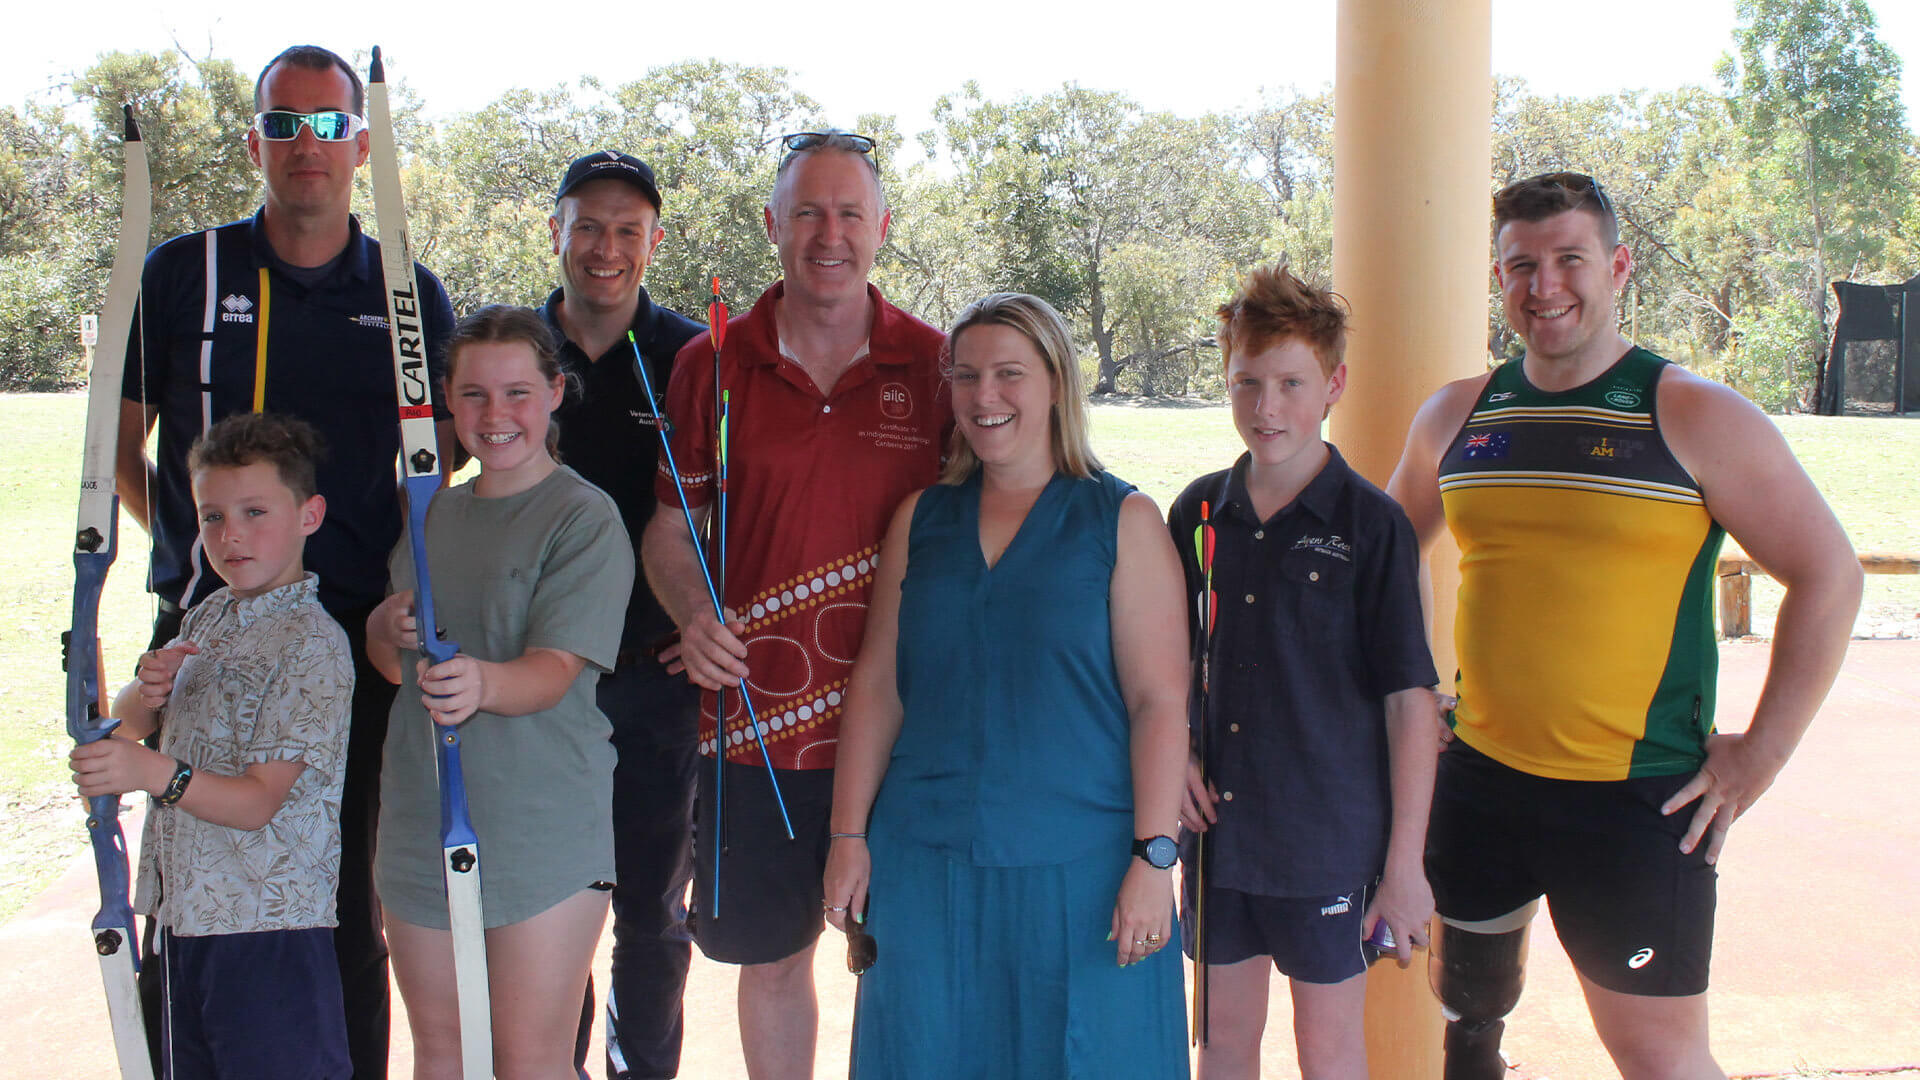 VSA WA Archery event - Bonnor family + MH, Rob Turner and Mark Daniels